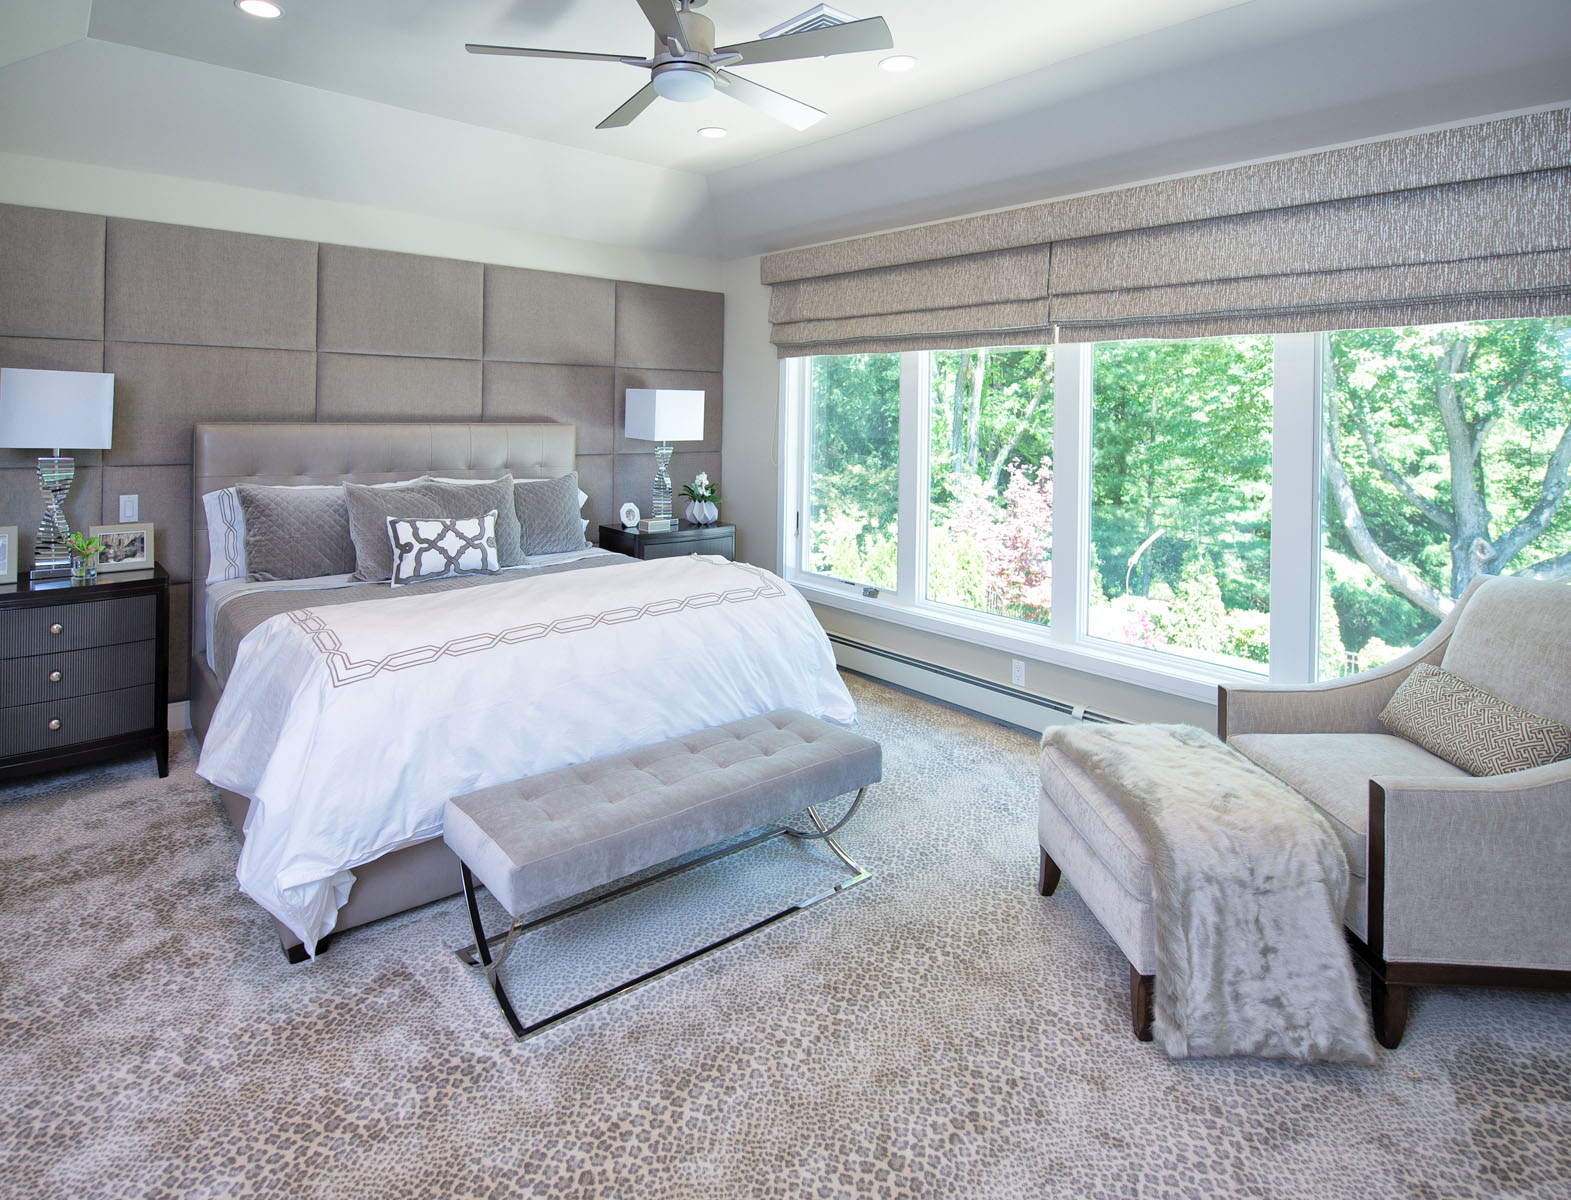 Master bedroom renovation in Bedford, New York, by Lara Michelle Interiors